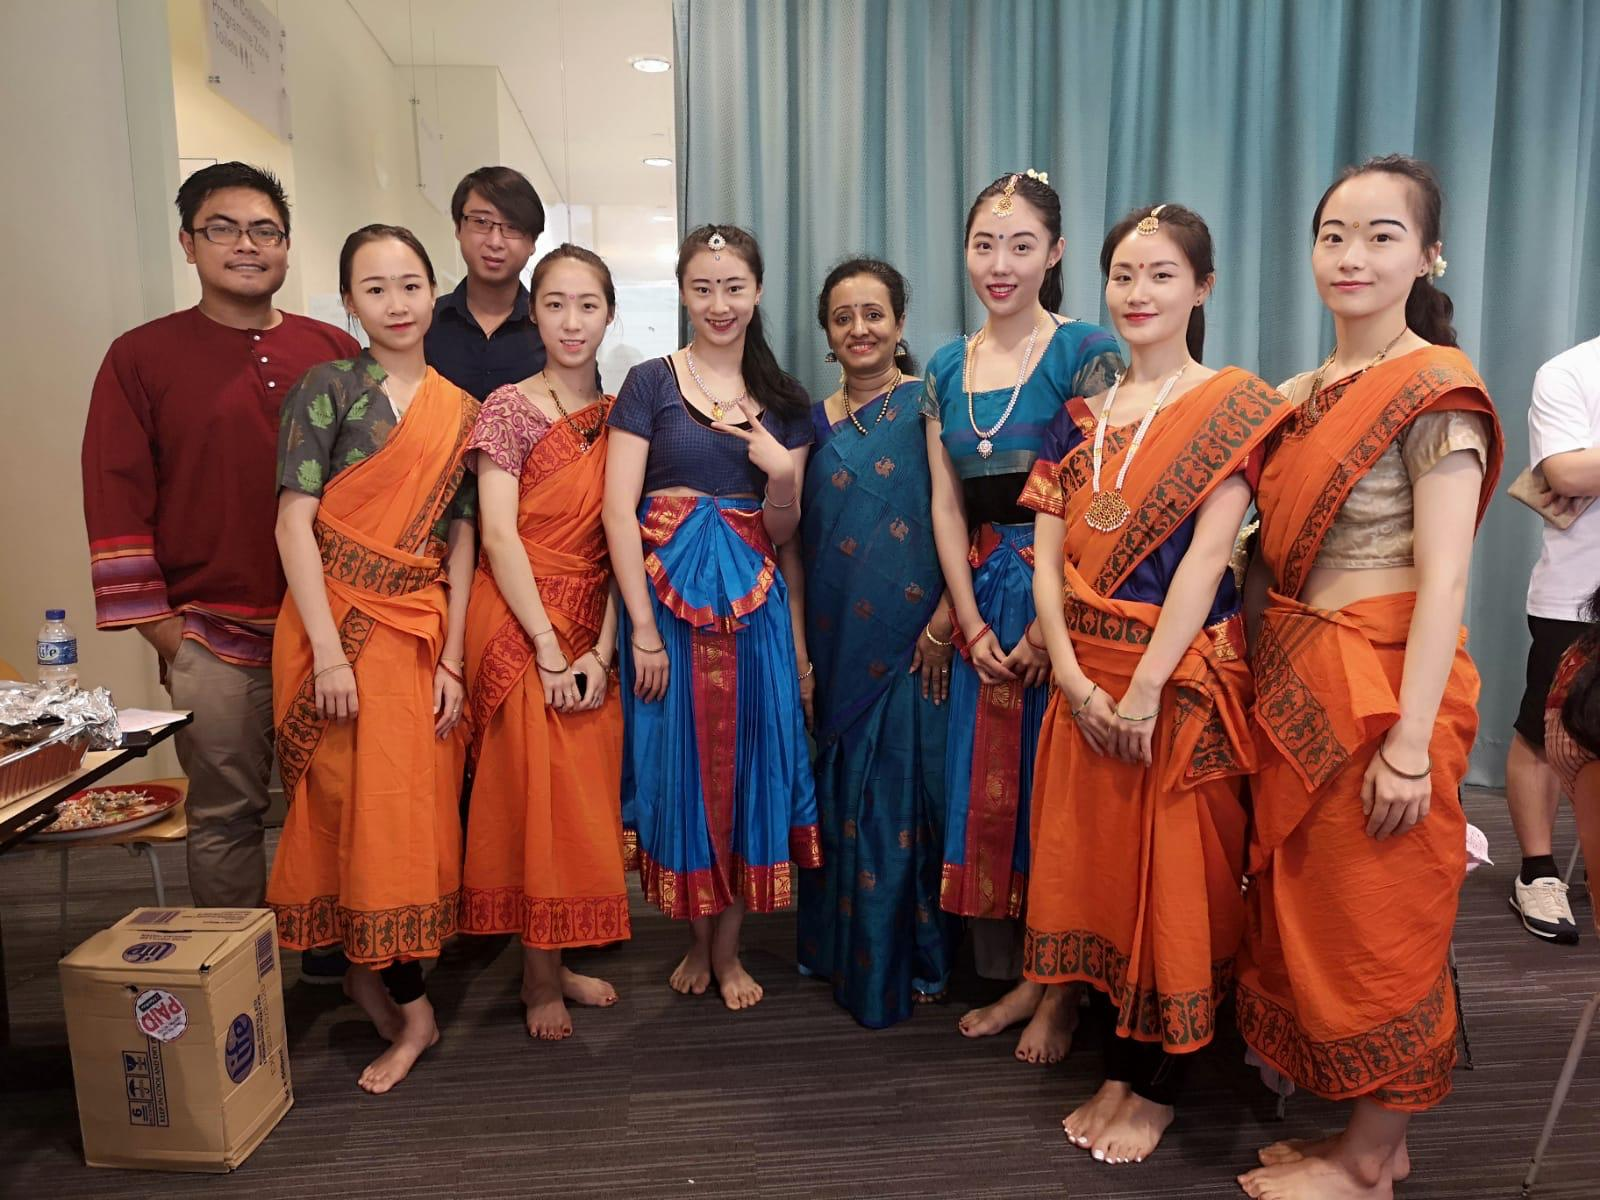 Soundara Nayaki Vairavan (centre) with Khalid Bin Supandi, Jireh Koh Yi and the performers from Singapore Raffles Music College. Photo courtesy: Soundara Nayaki Vairavan